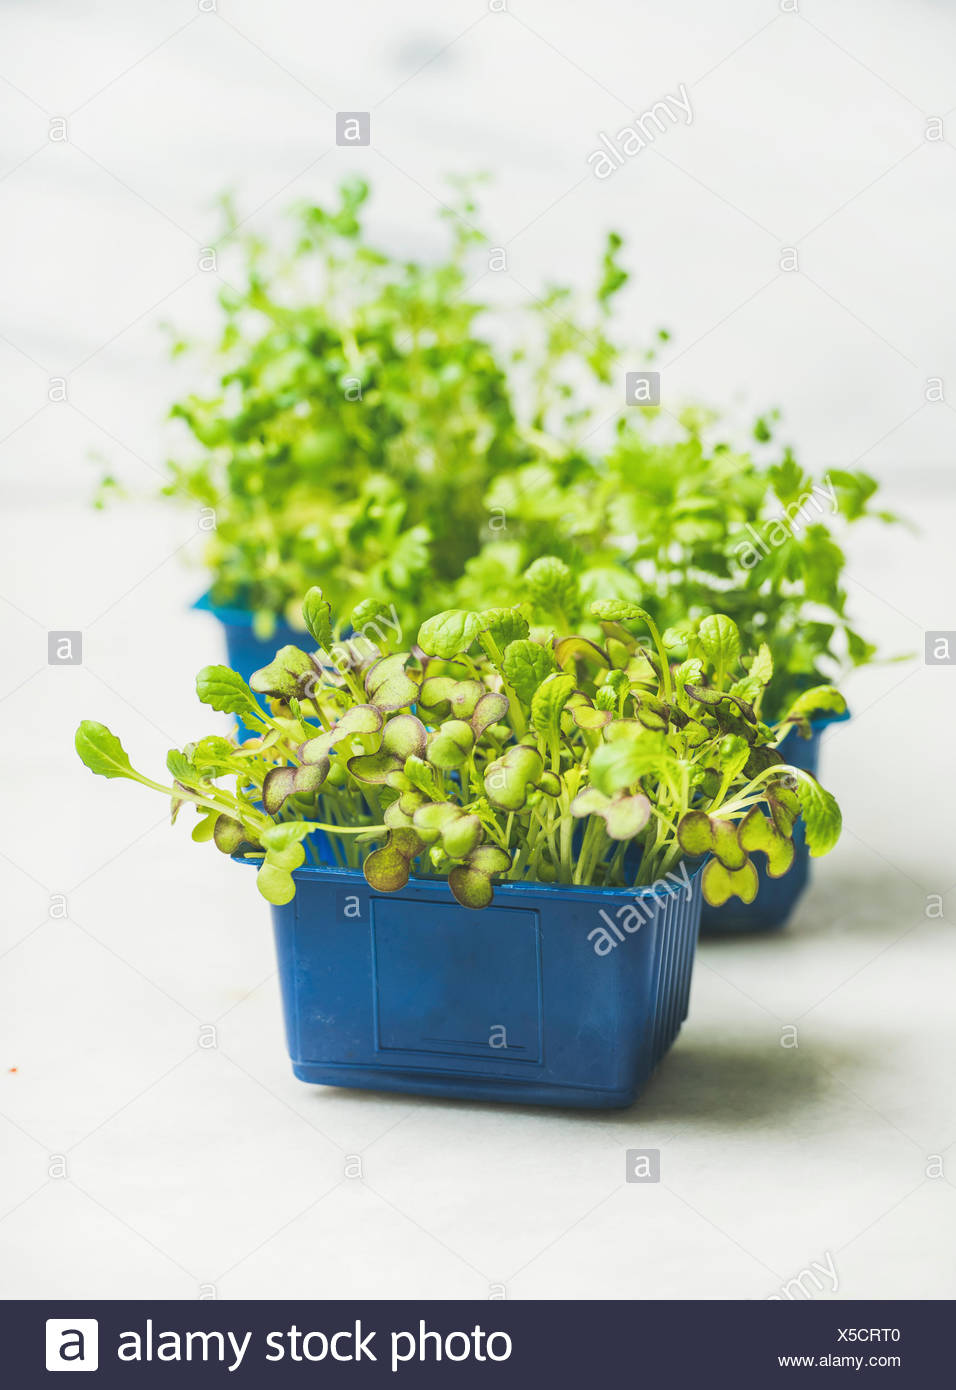 Fresh spring green live radish kress sprouts in blue plastic pots over white marble background for healthy eating, selective focus. Clean eating, diet - Stock Image